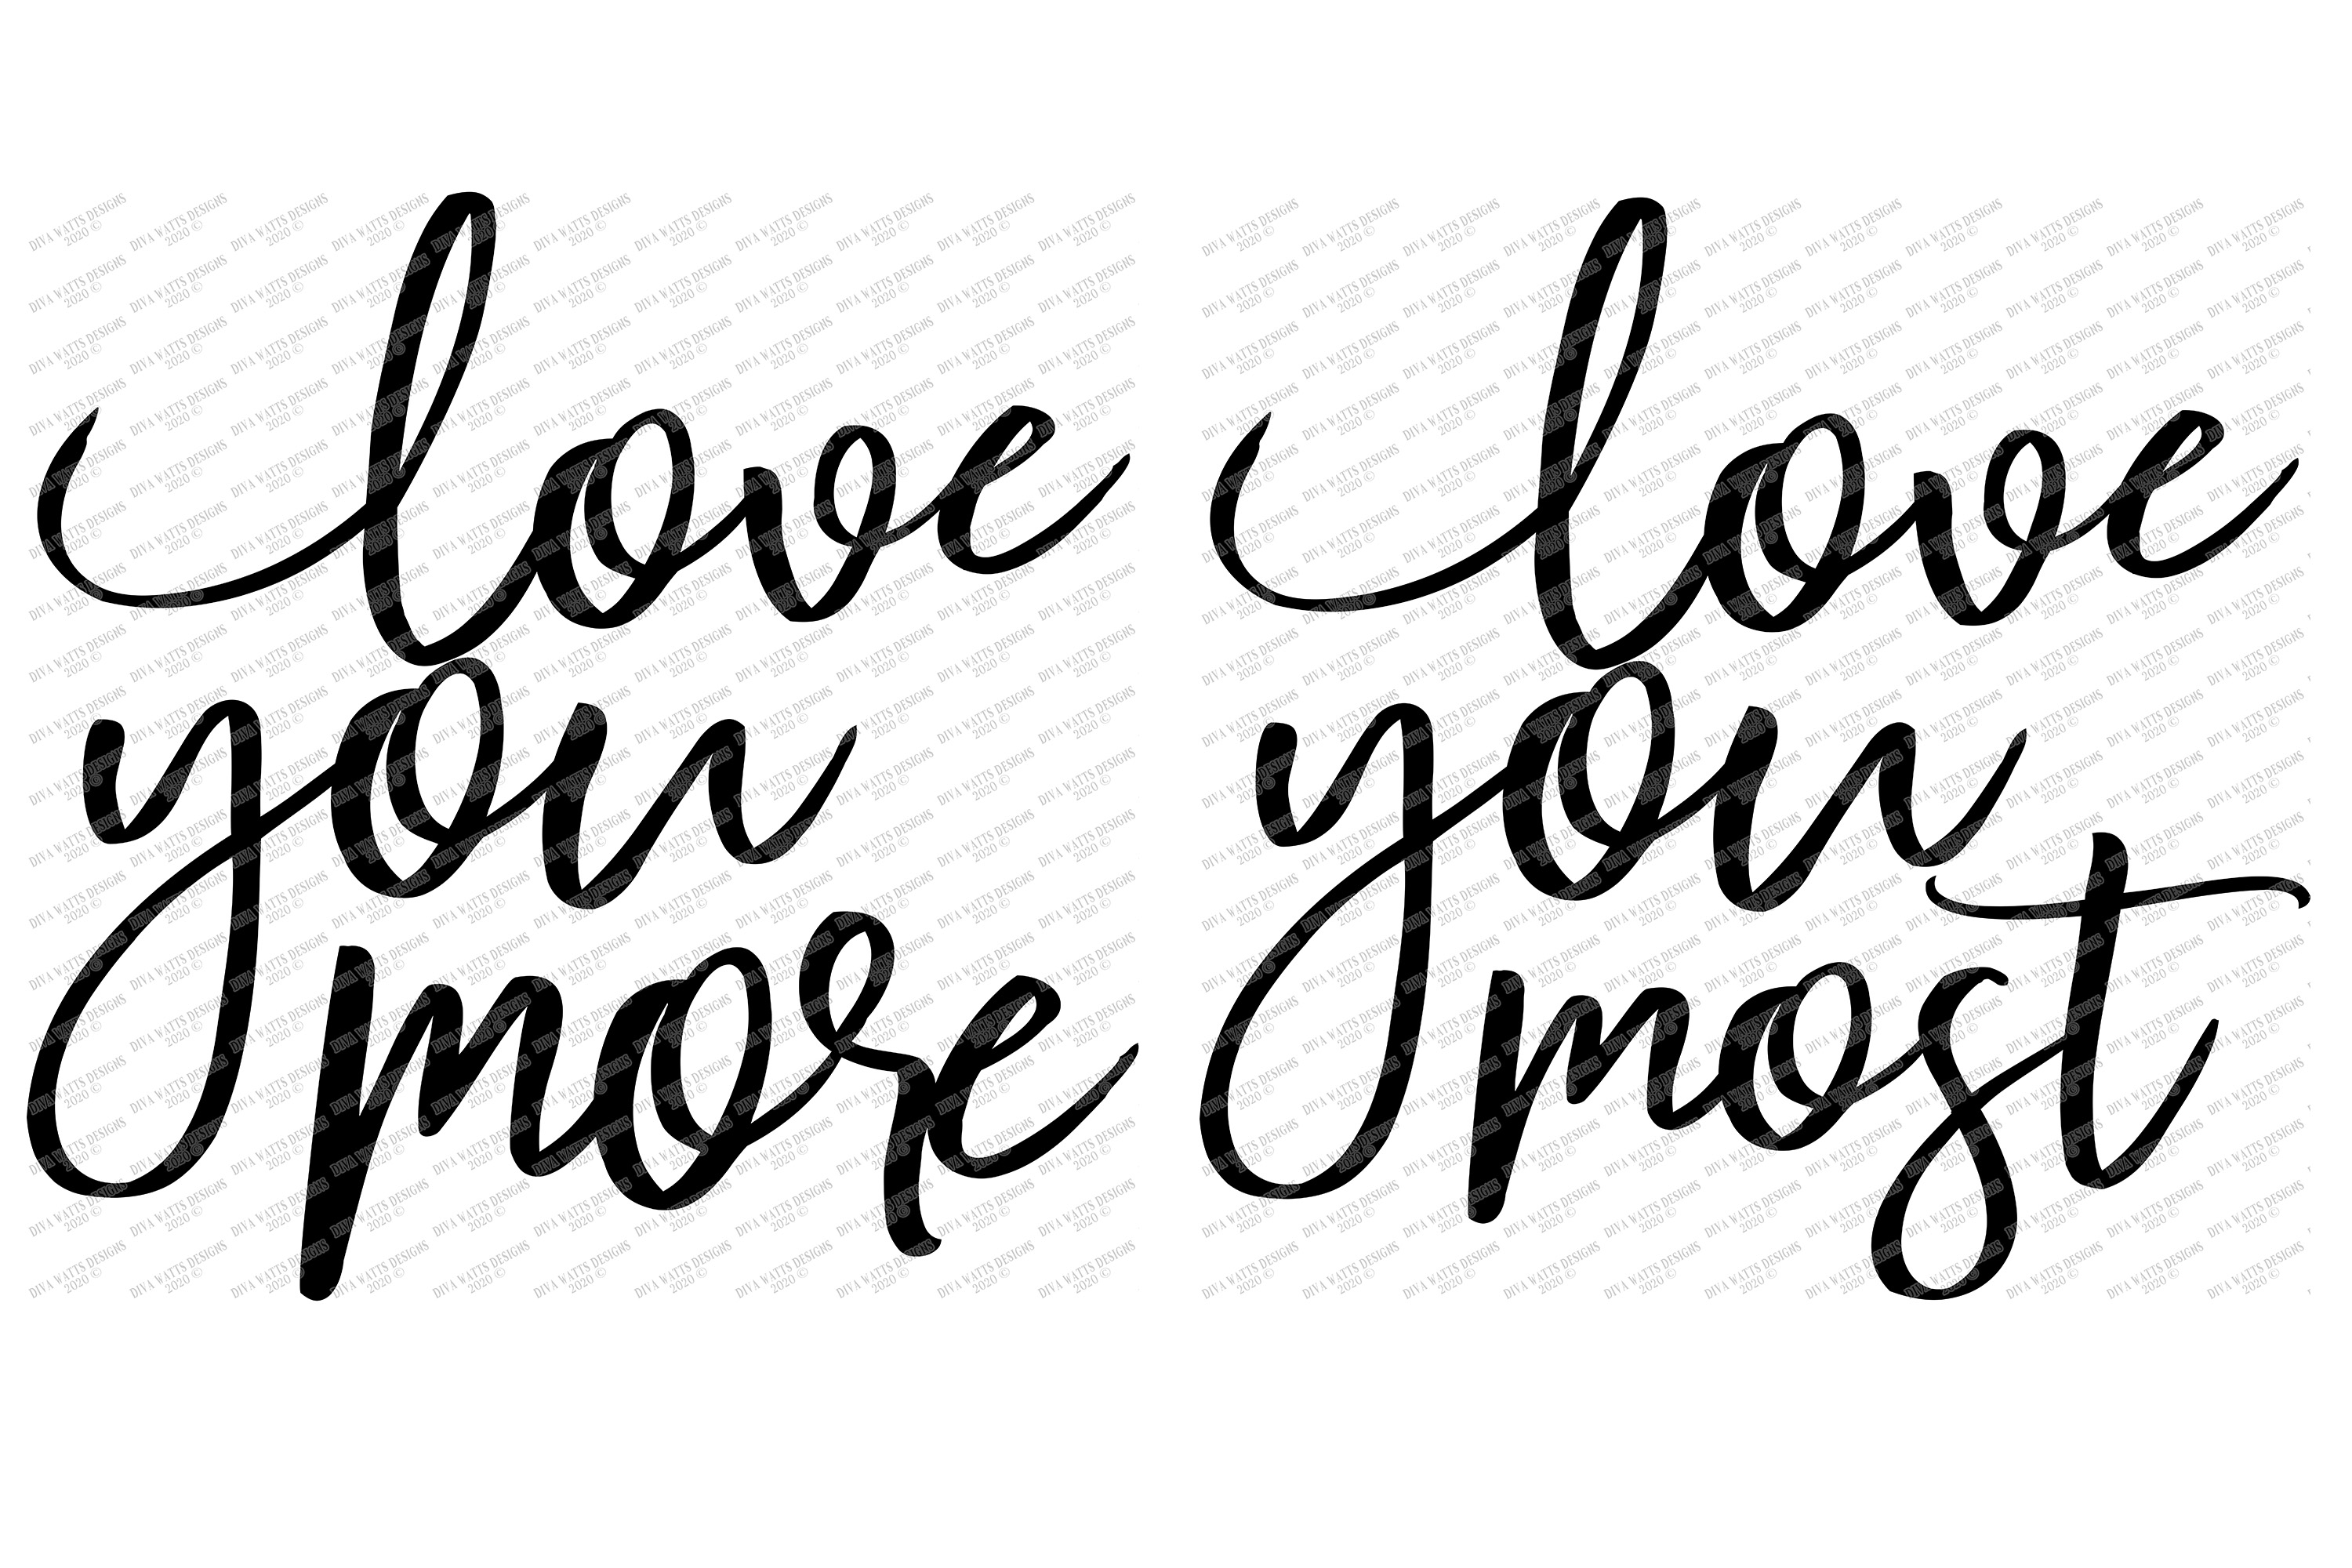 Download Love You More / Most - Set of 2 Modern Farmhouse Signs SVG